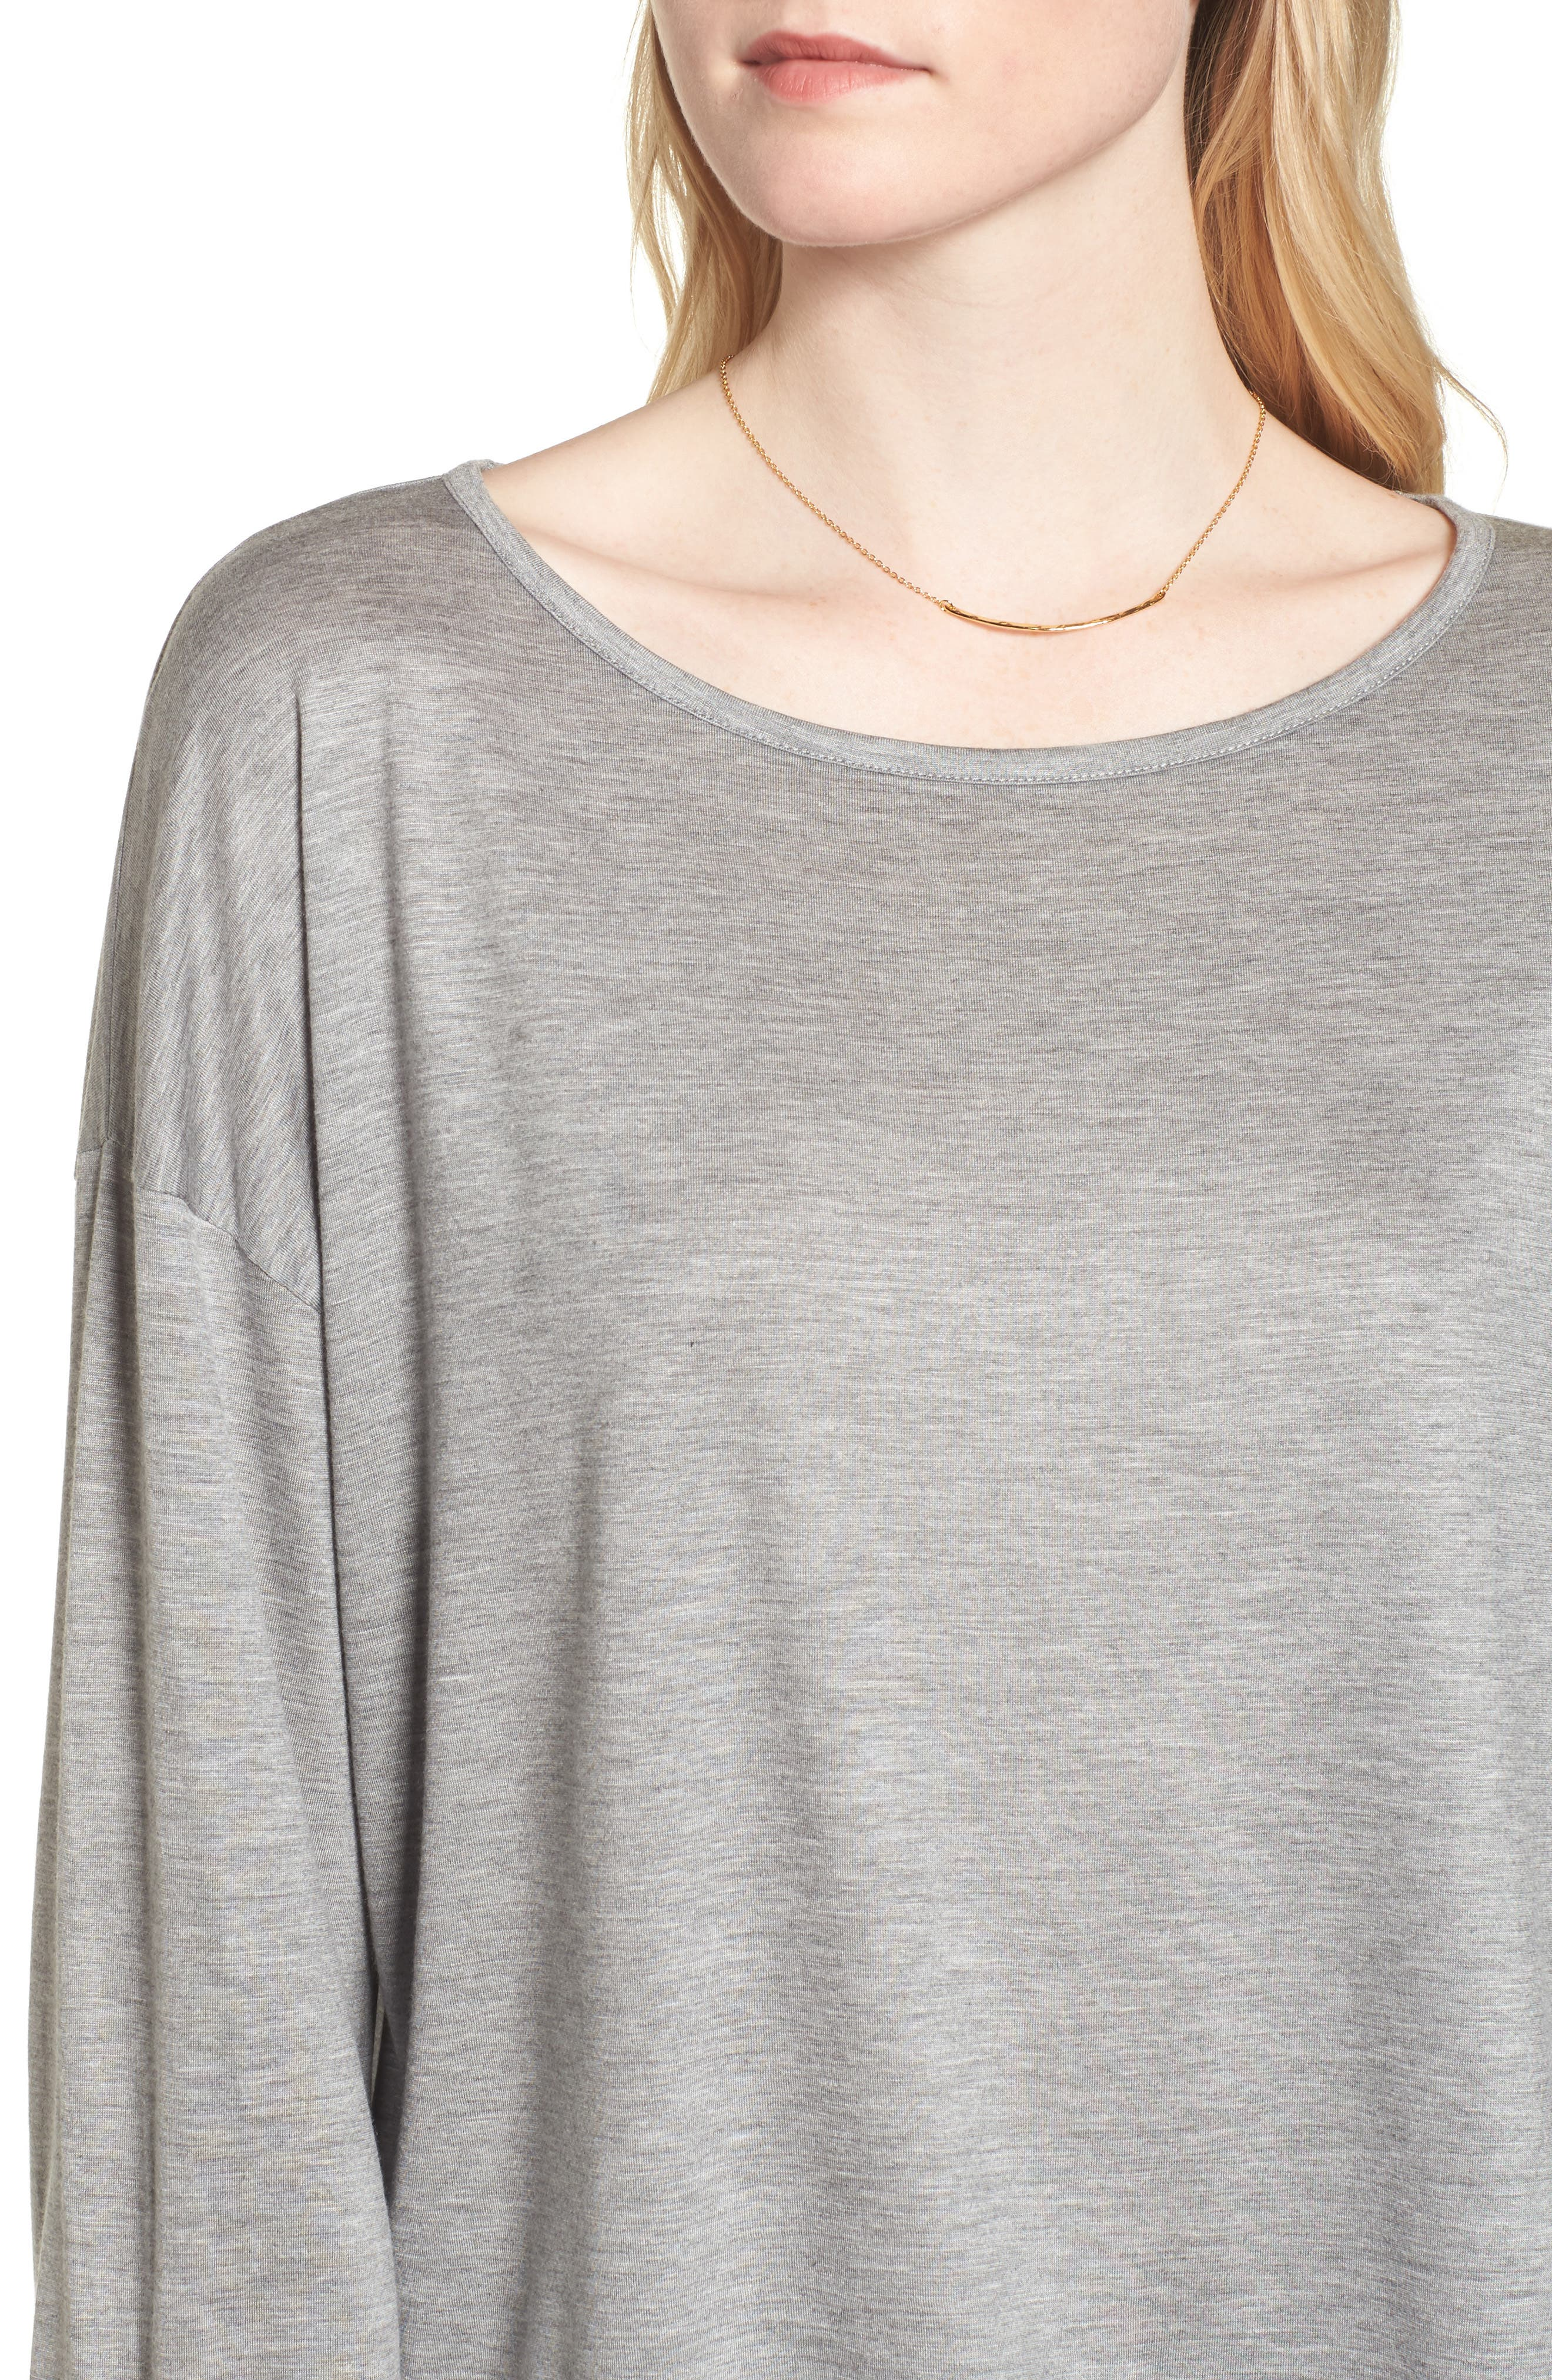 Libretto Wide Sleeve Top,                             Alternate thumbnail 14, color,